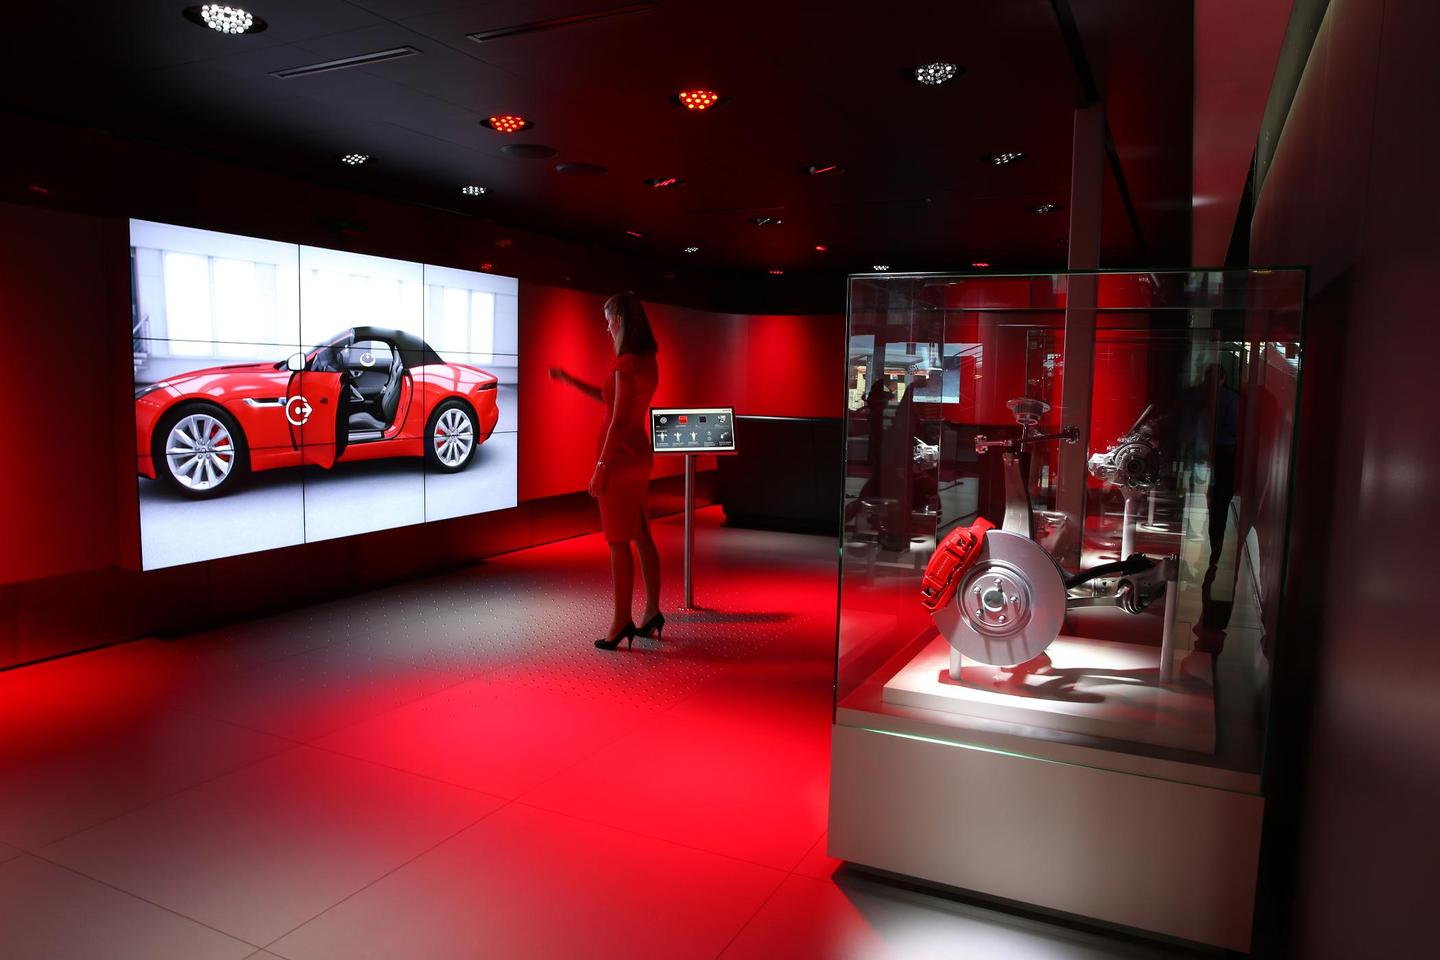 The customer can explore a near full-sized virtual car